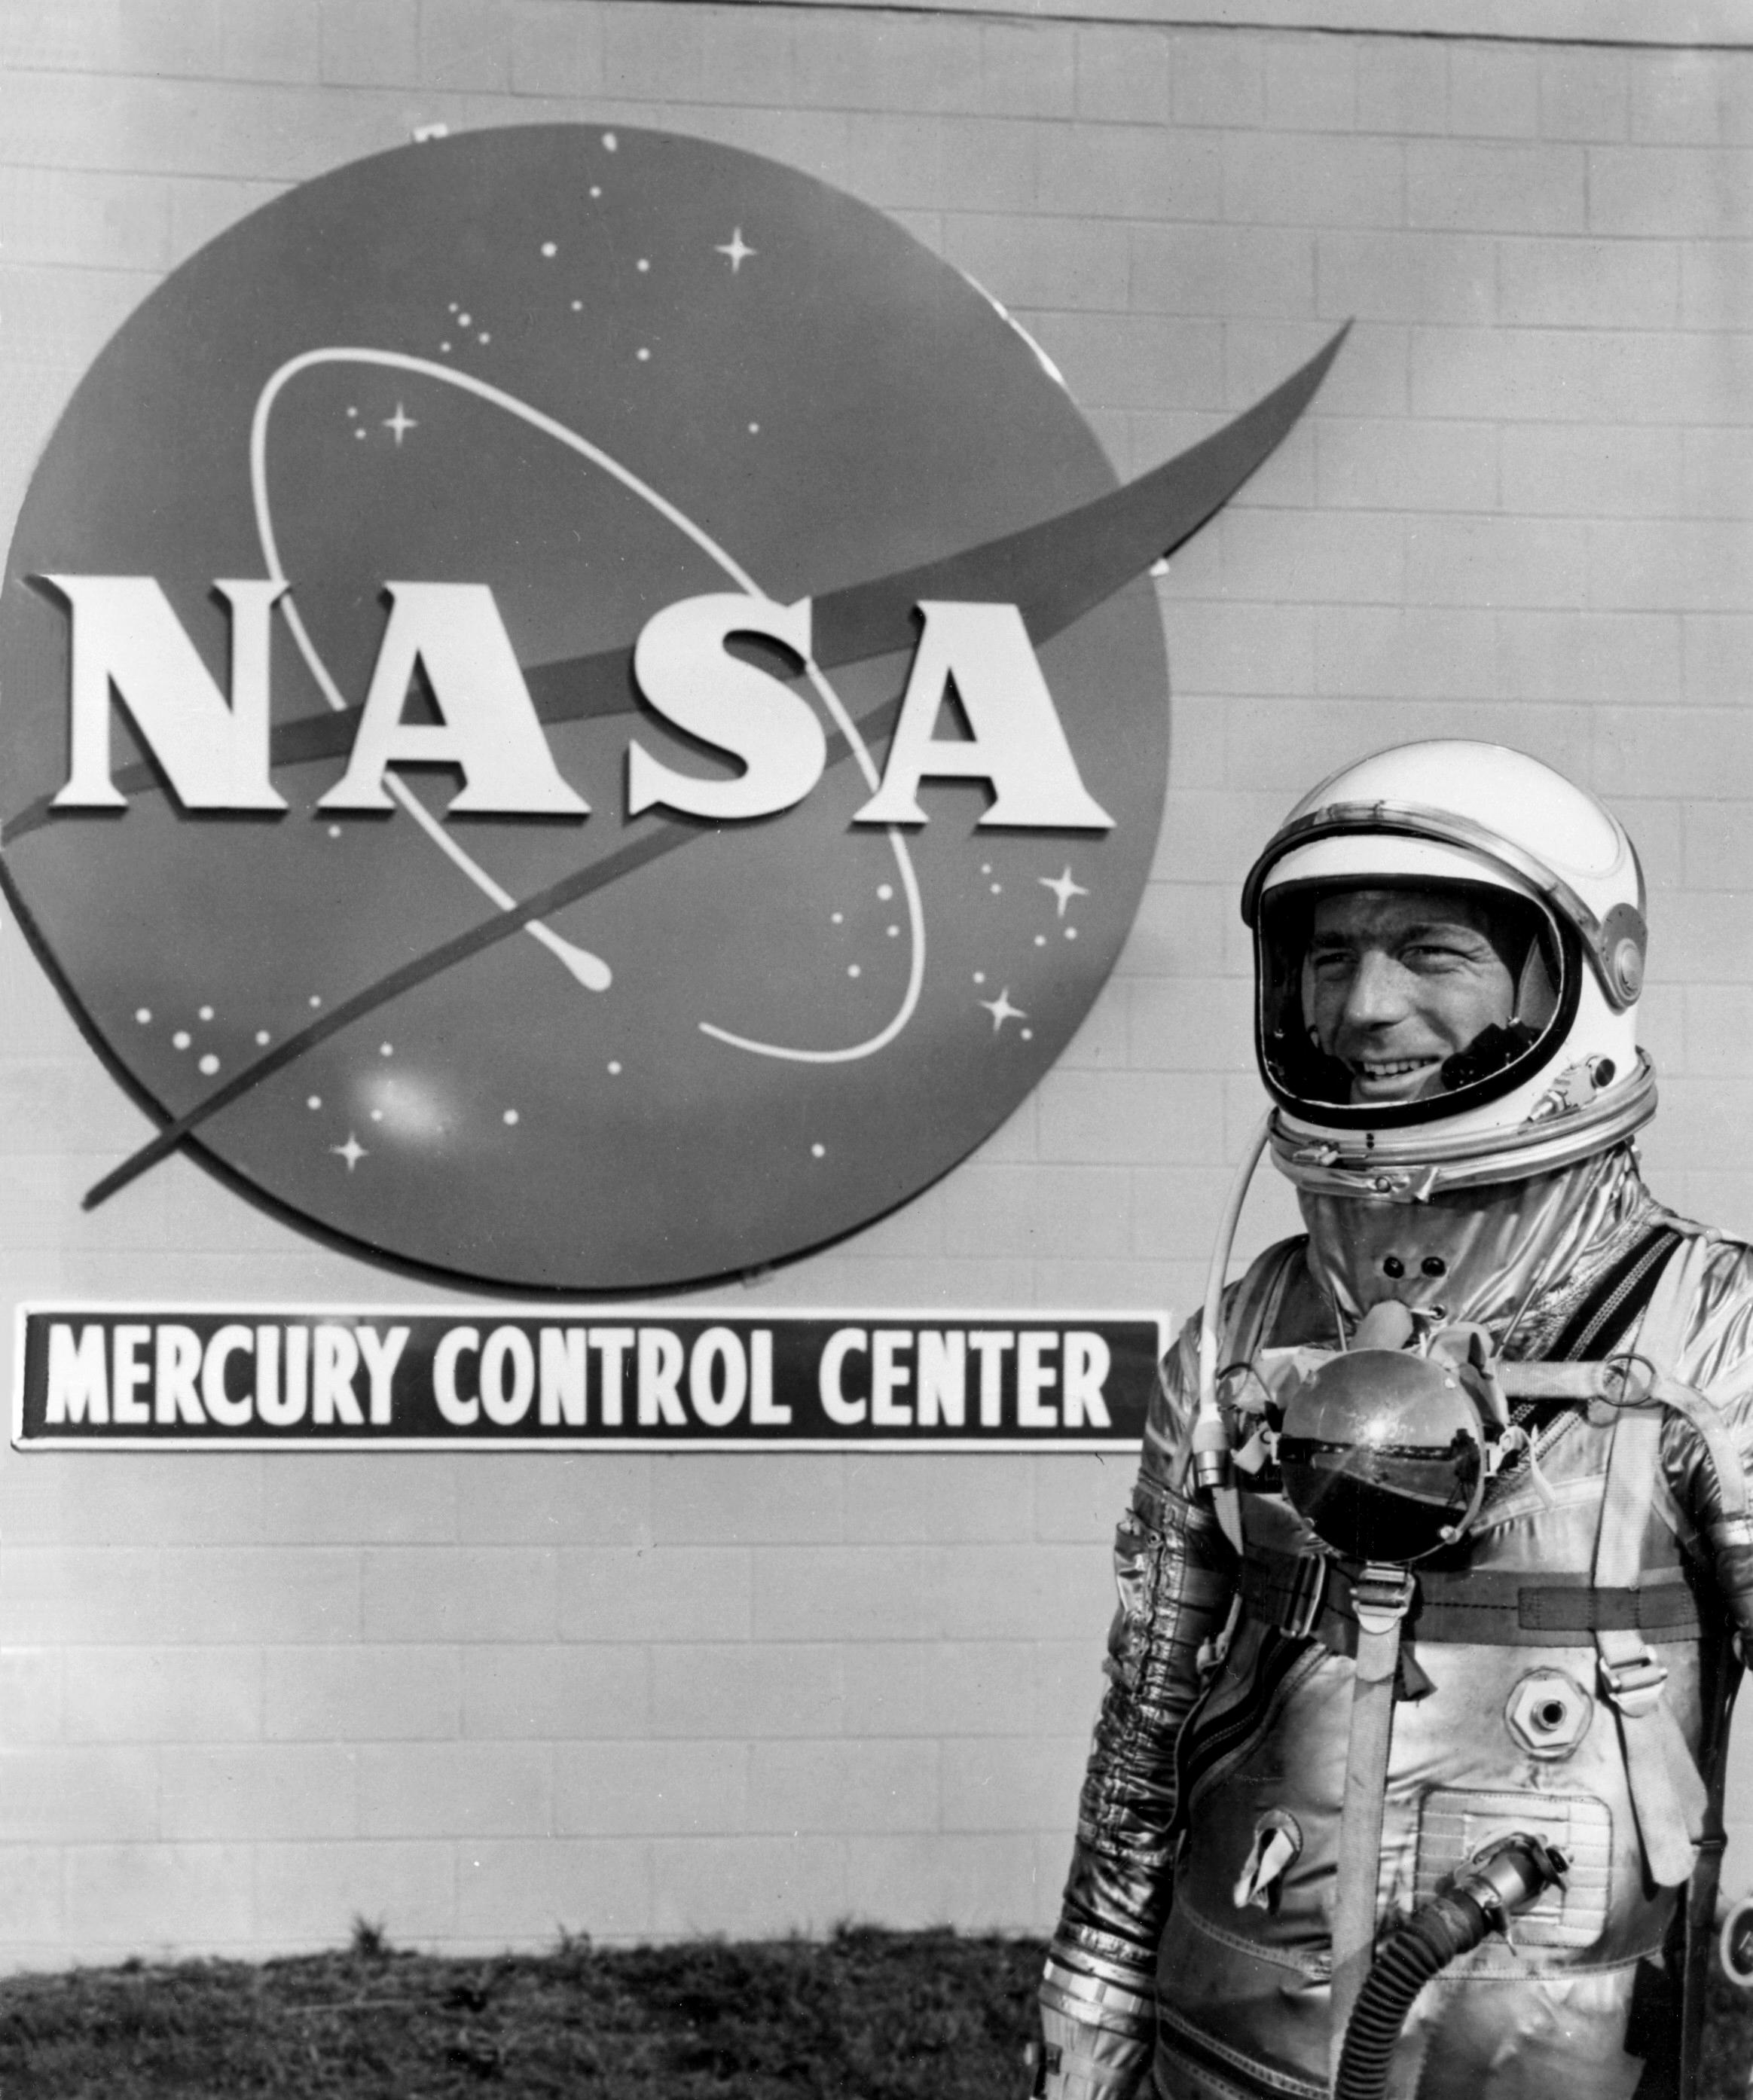 1978 mercury missions nasa - photo #24